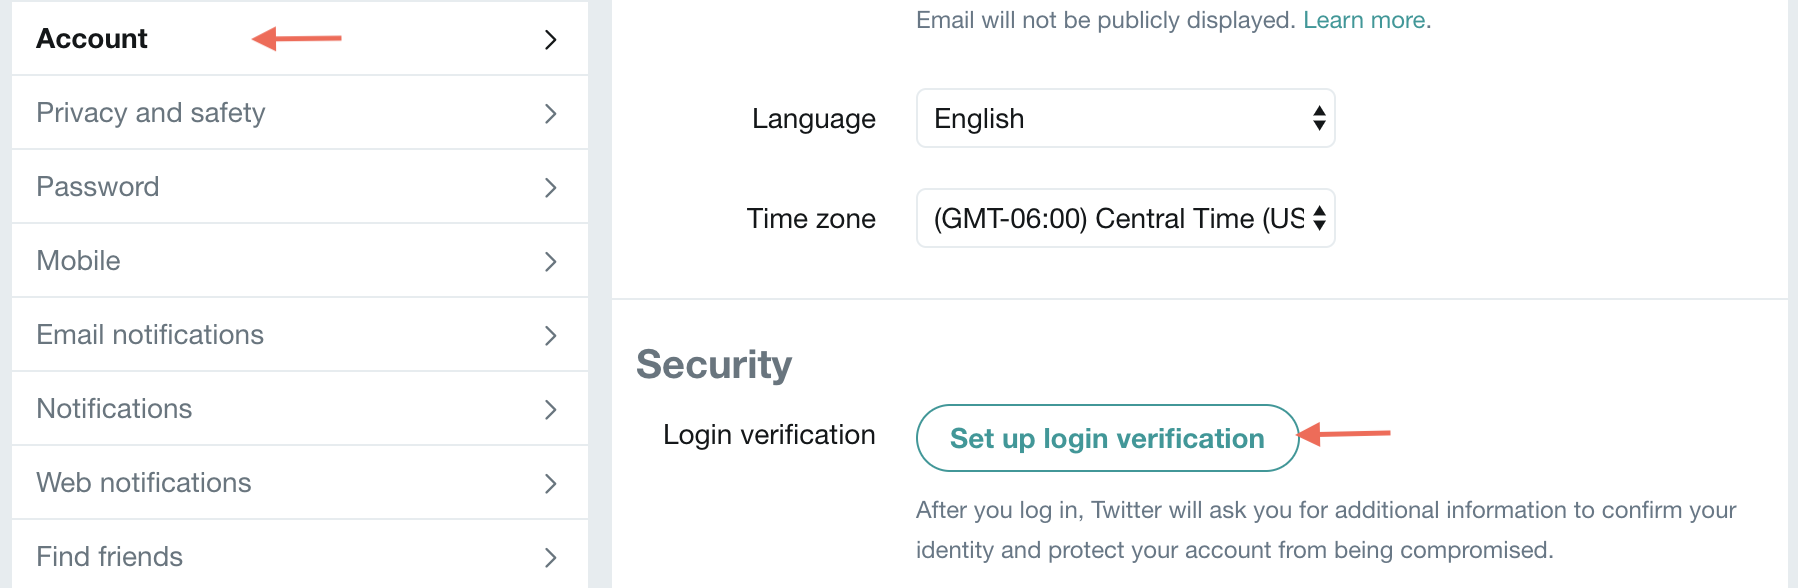 Twitter Acct Settings page